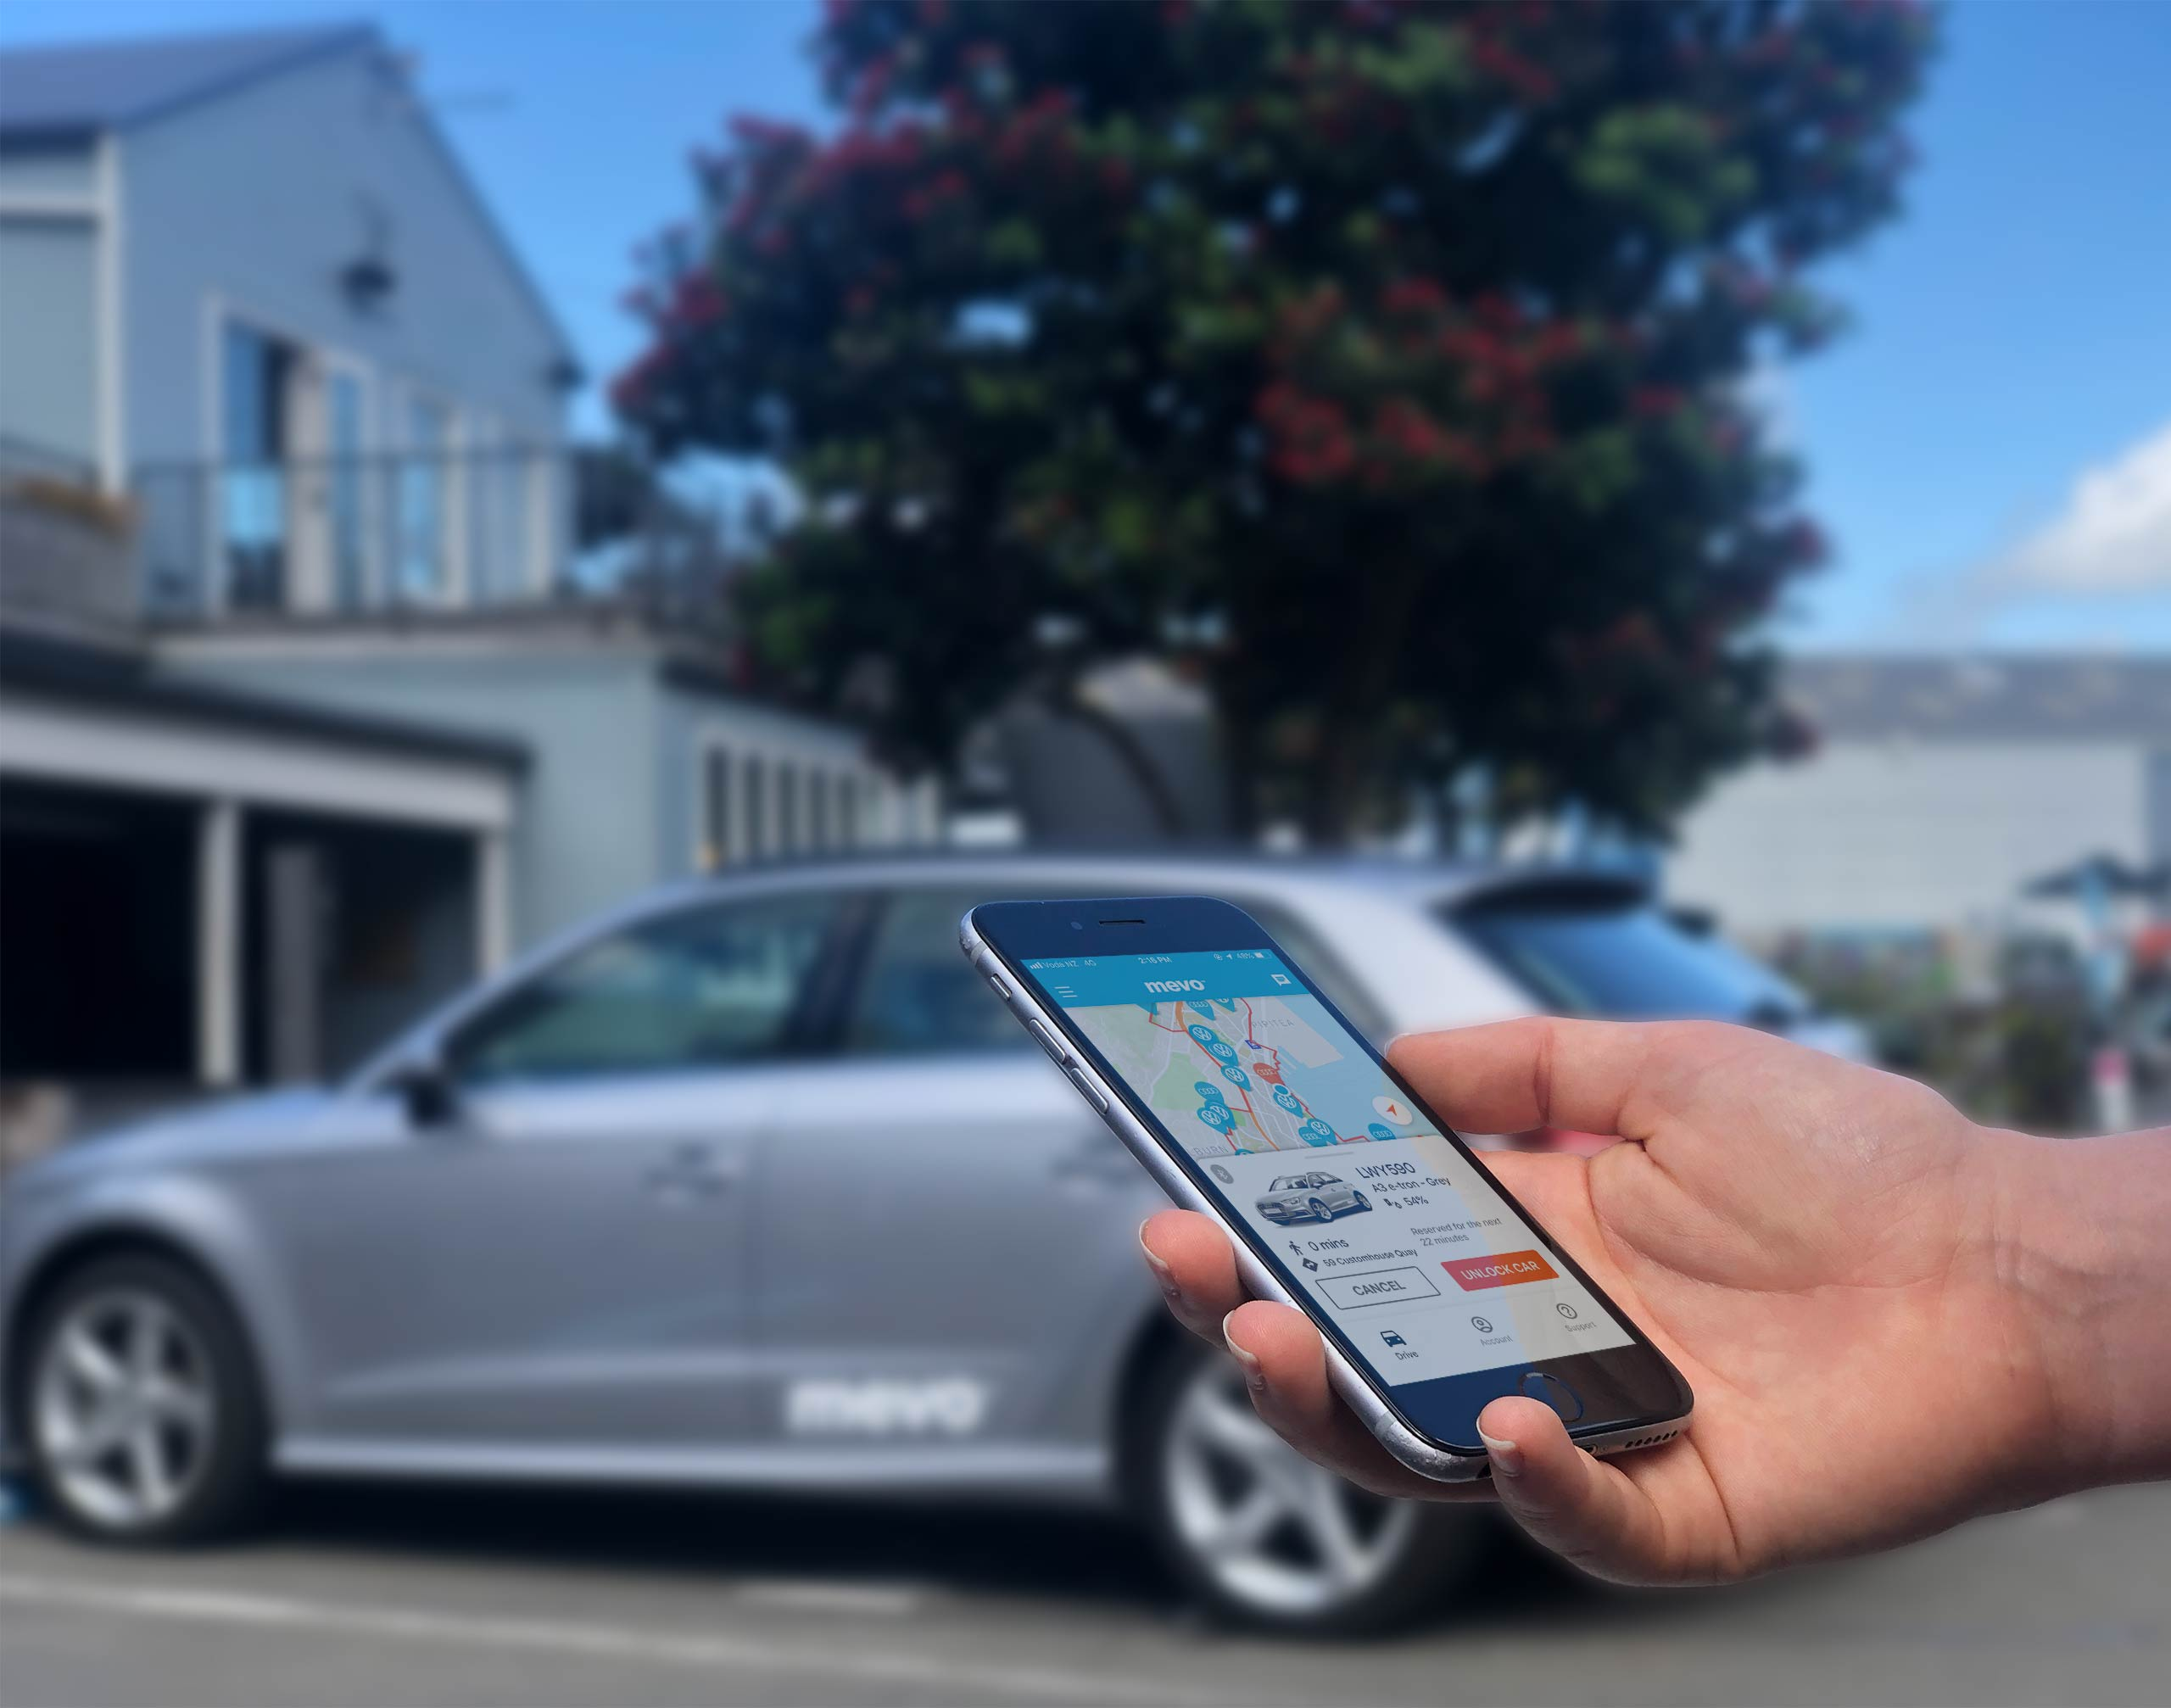 Mevo app on an iPhone being held in front of a Mevo car